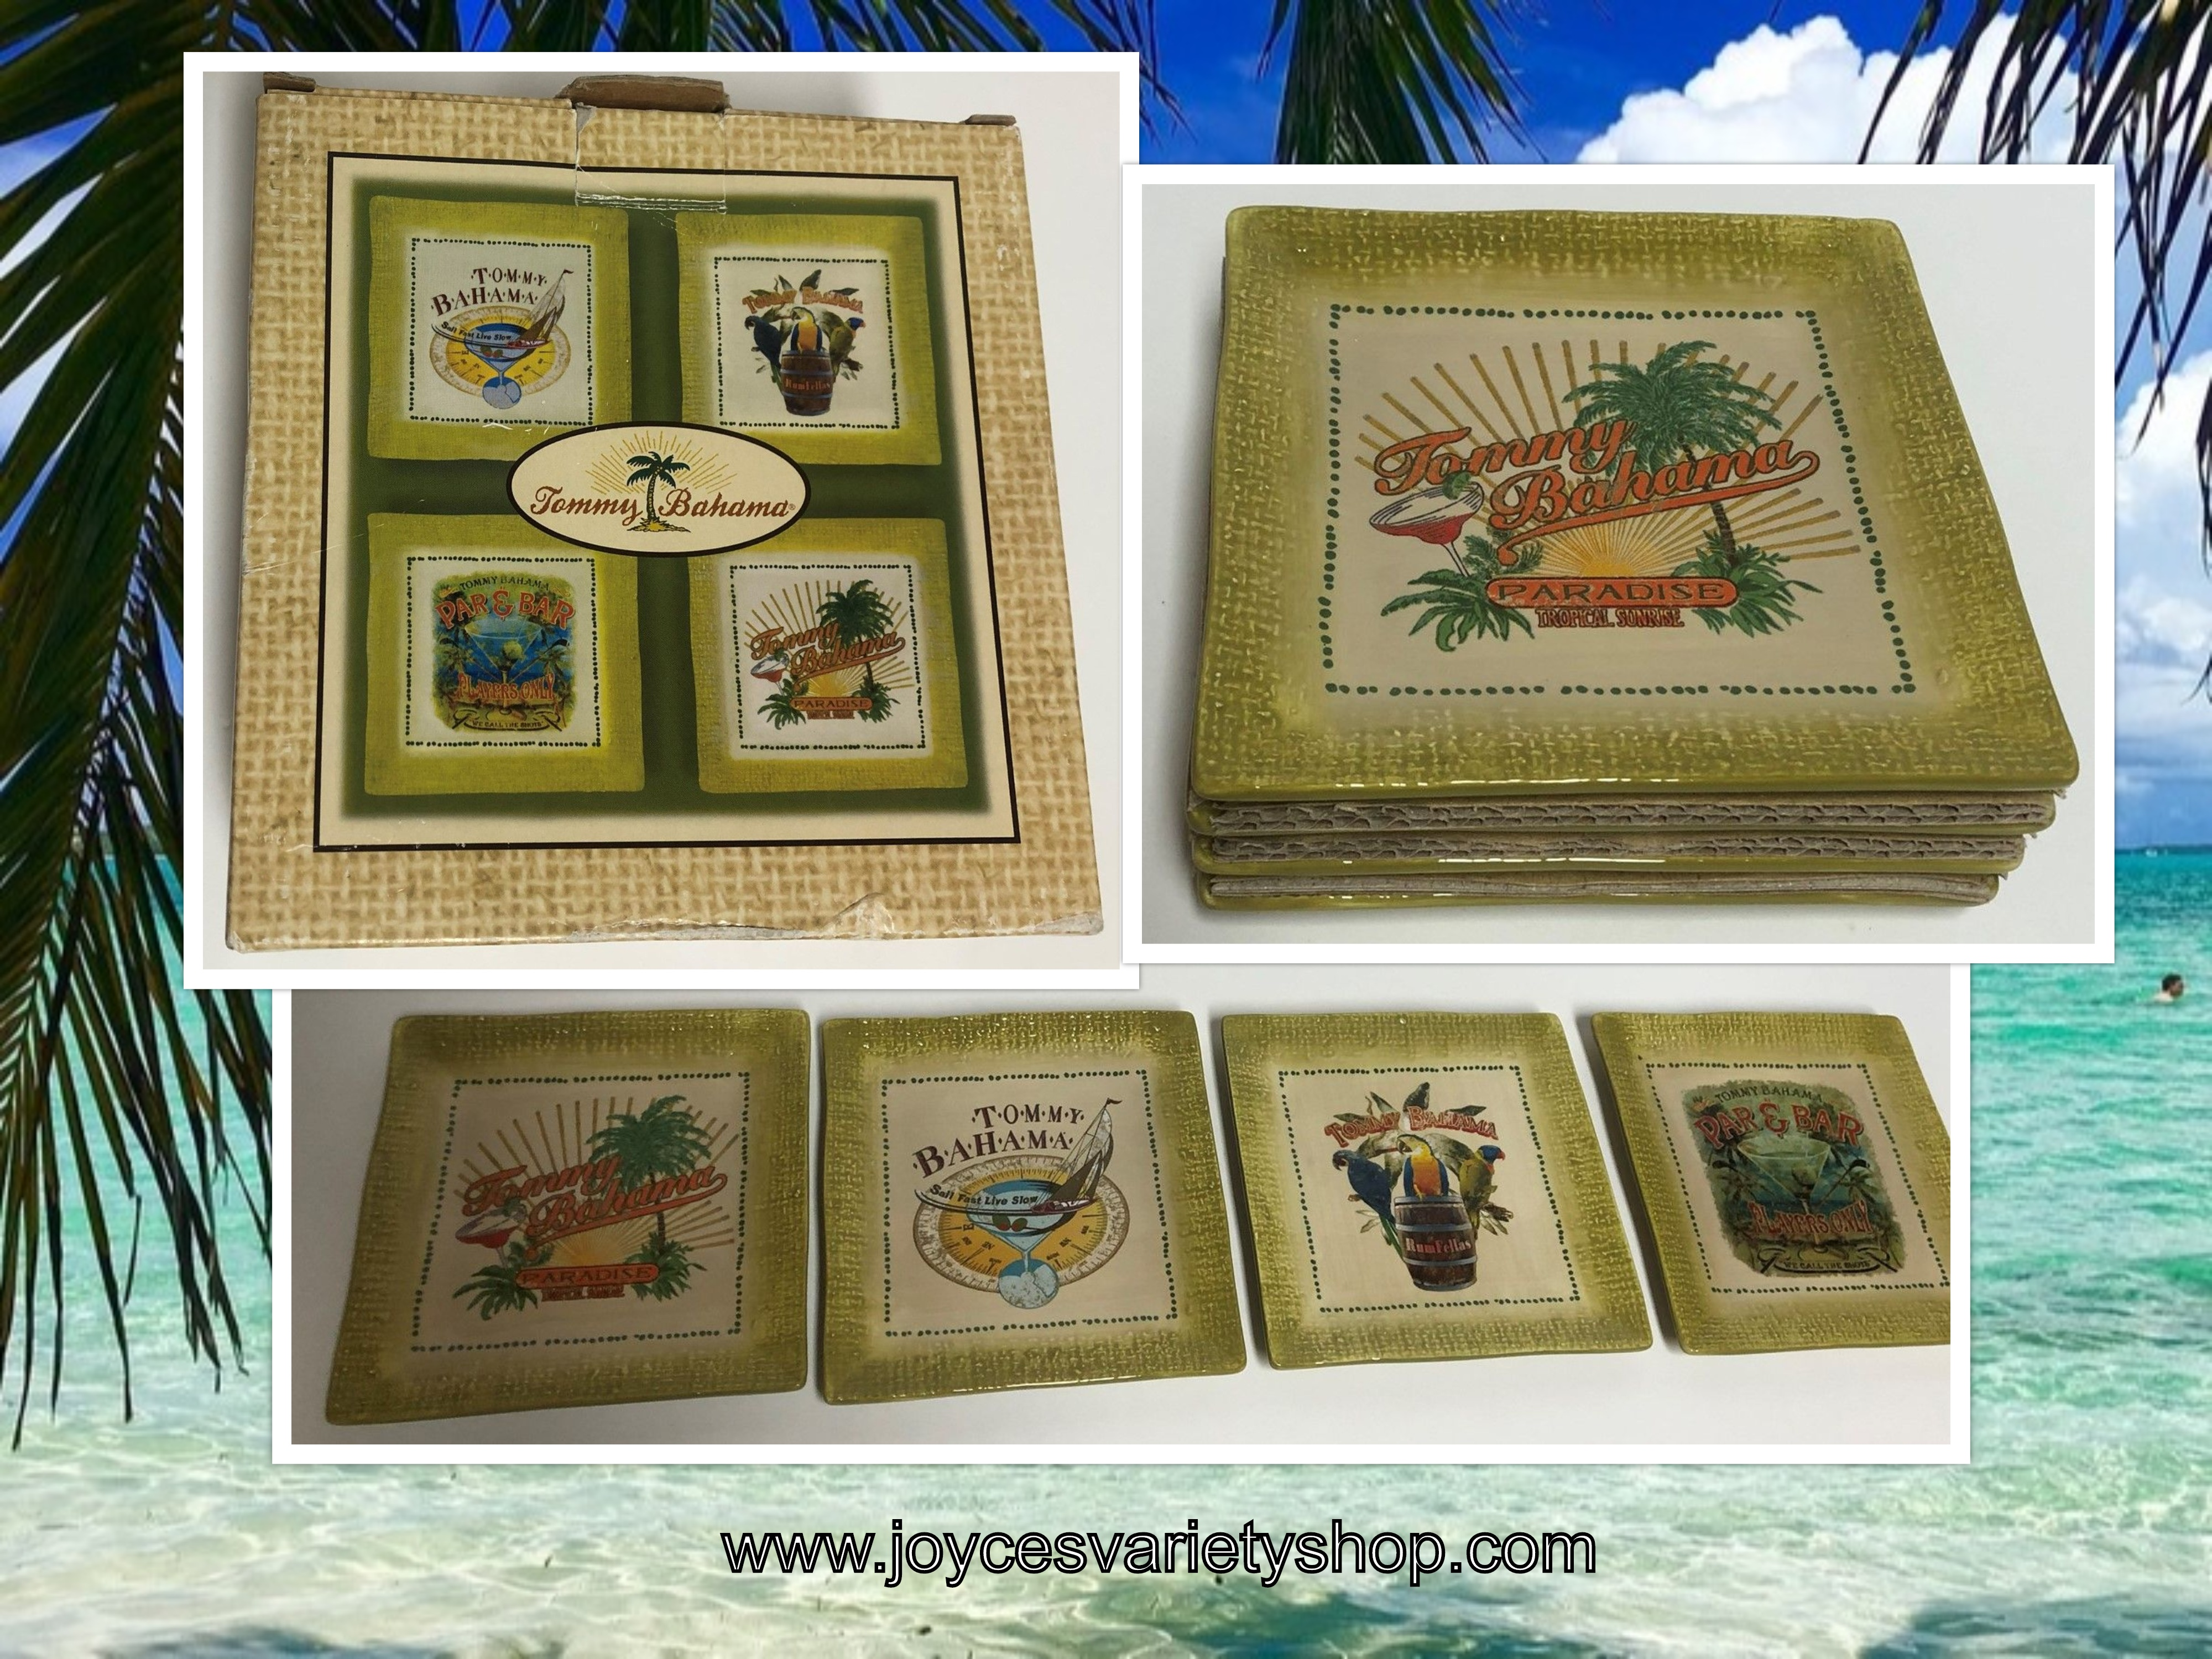 tommy bahama plates web collage.jpg